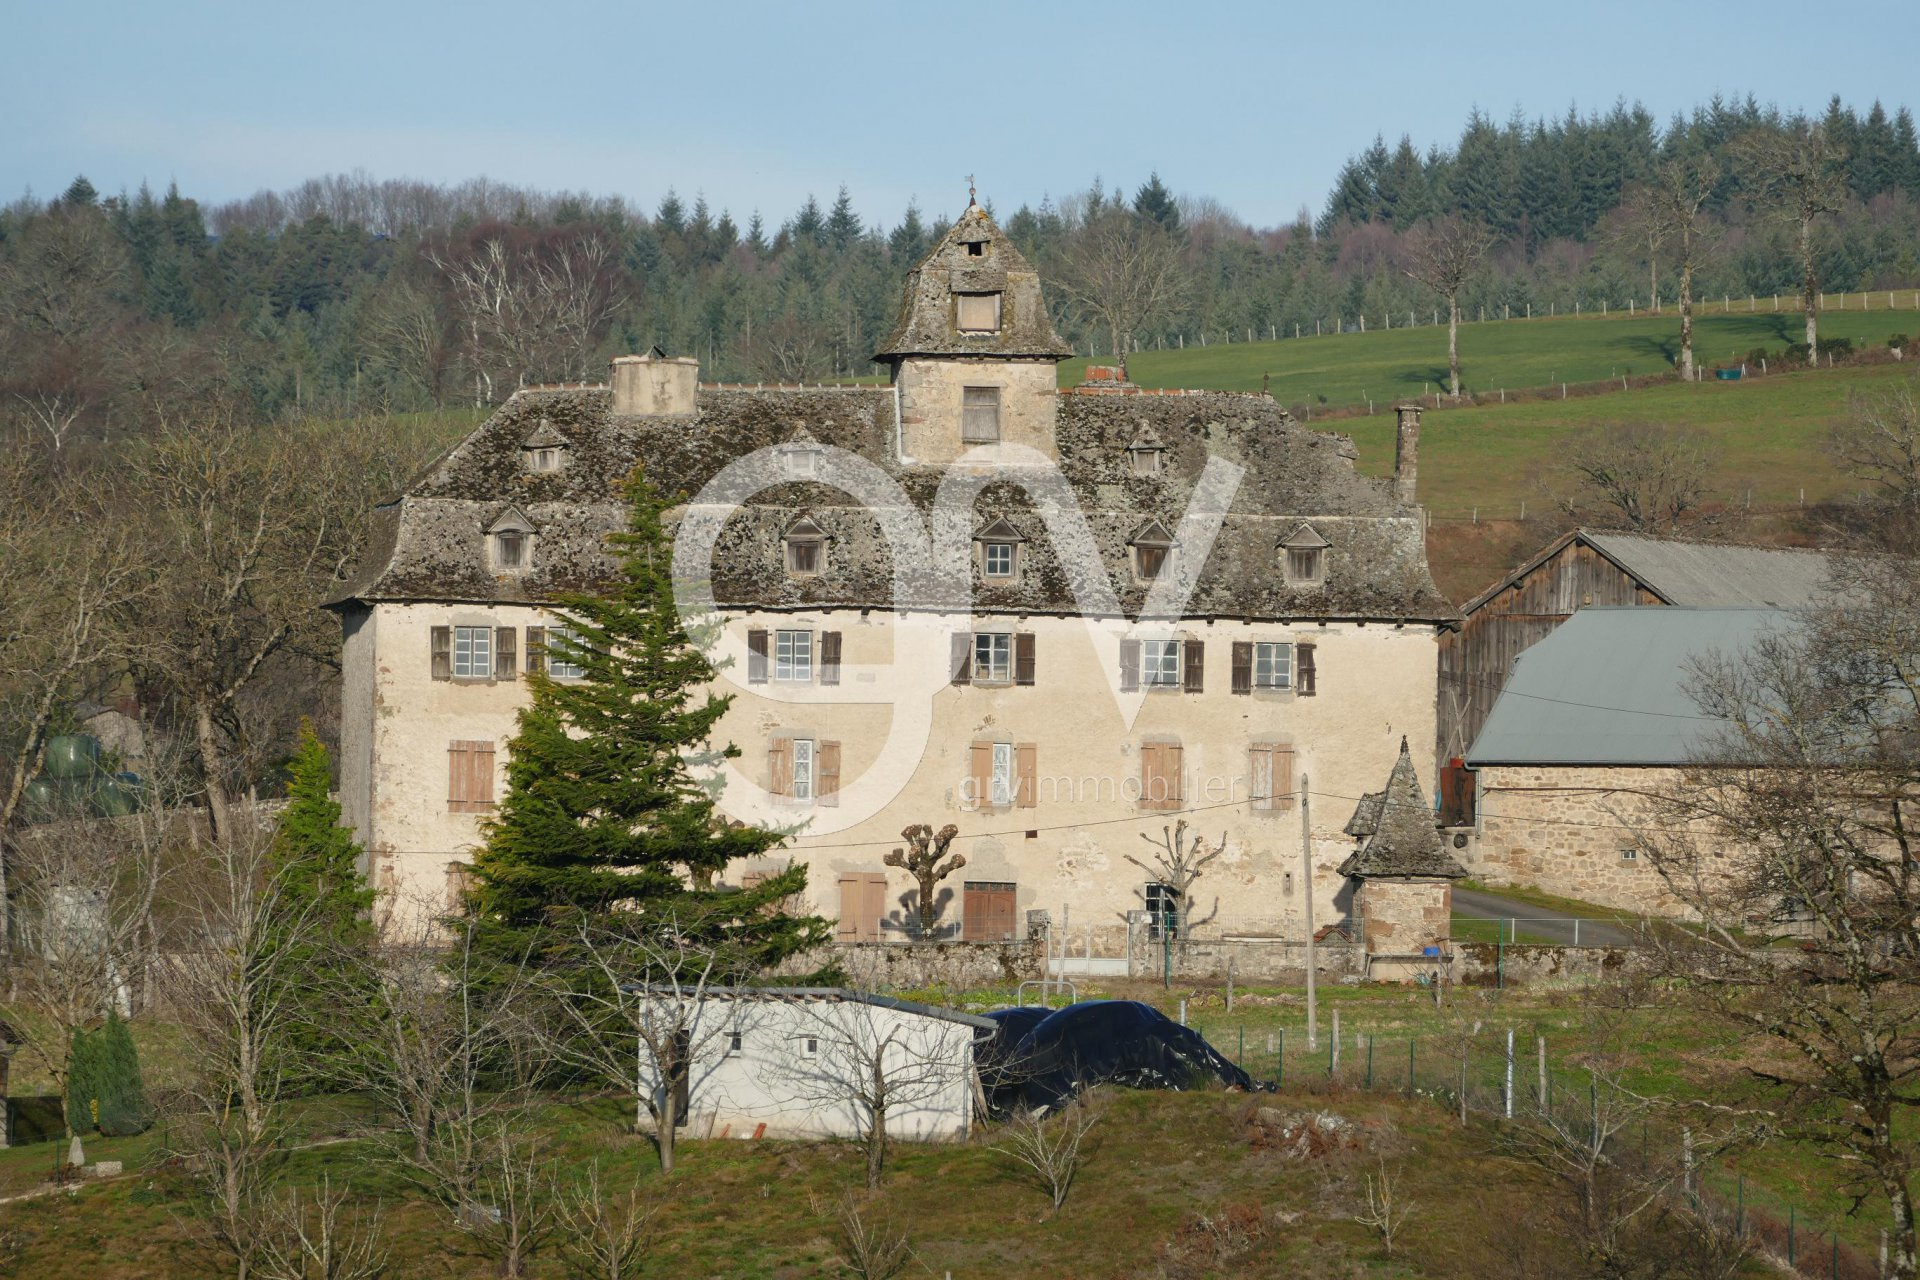 Old manor (18th century) with dependencies and Malt Cross